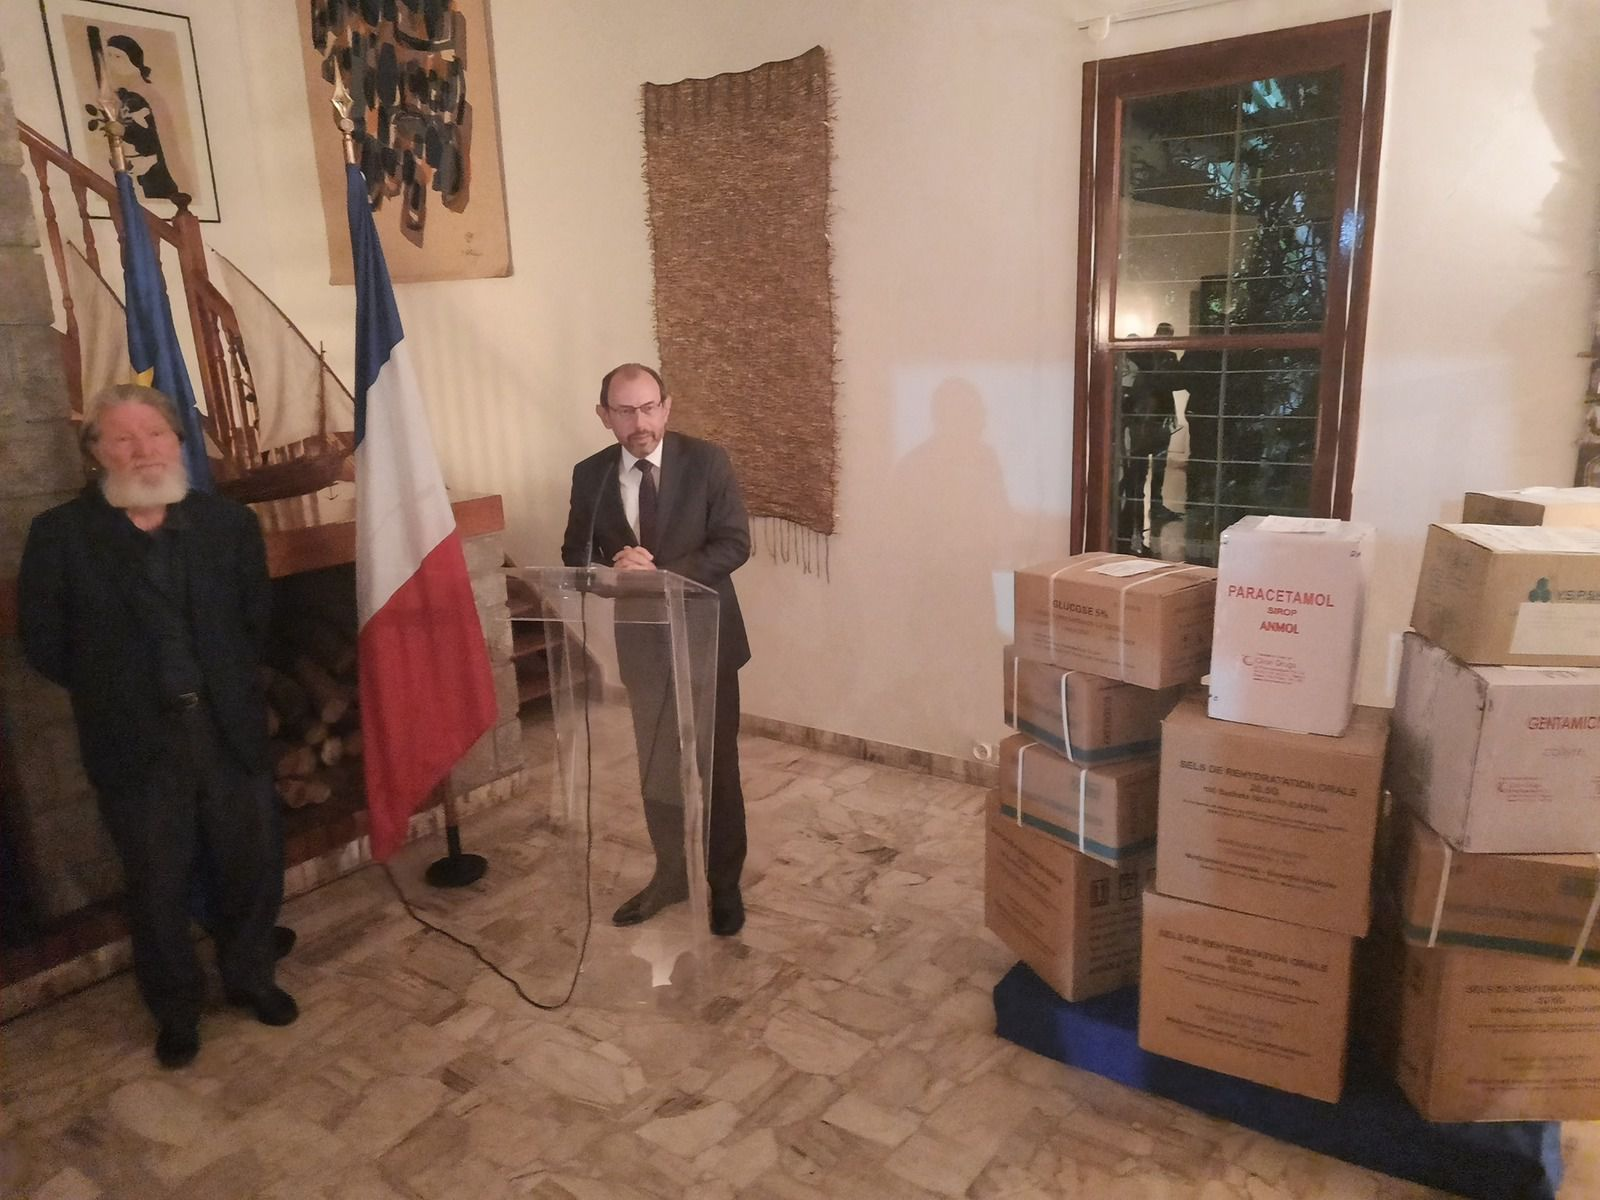 L'Ambassadeur à Madagascar a fait un don de médicaments destinés aux dispensaires du père Pedro (Reproduction de la photo de l'ambassade interdite sans autorisation).